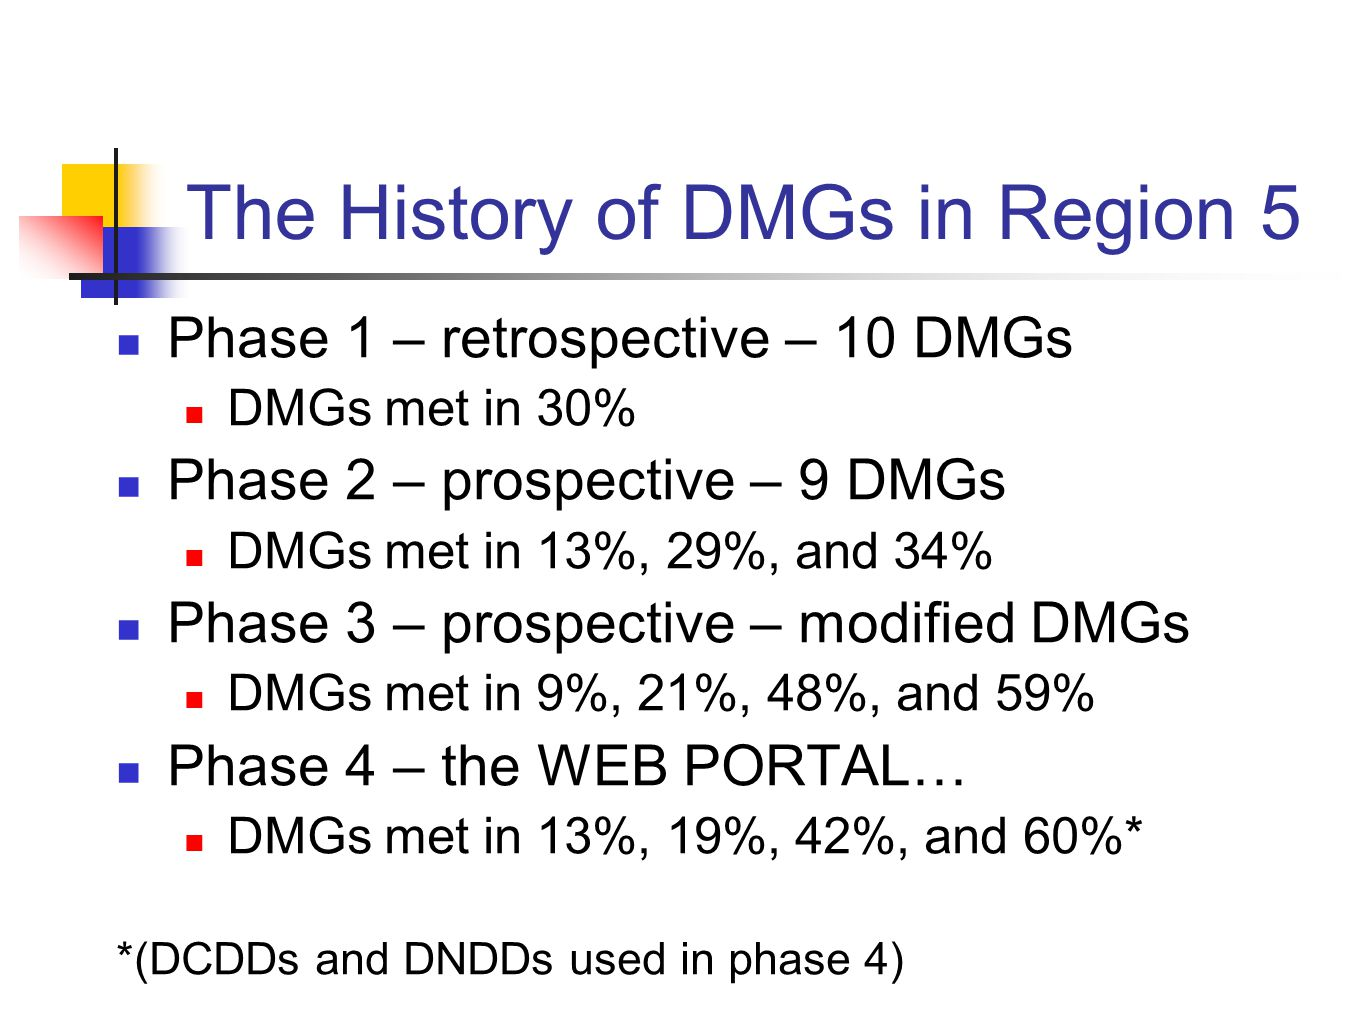 The History of DMGs in Region 5 Phase 1 – retrospective – 10 DMGs DMGs met in 30% Phase 2 – prospective – 9 DMGs DMGs met in 13%, 29%, and 34% Phase 3 – prospective – modified DMGs DMGs met in 9%, 21%, 48%, and 59% Phase 4 – the WEB PORTAL… DMGs met in 13%, 19%, 42%, and 60%* *(DCDDs and DNDDs used in phase 4)